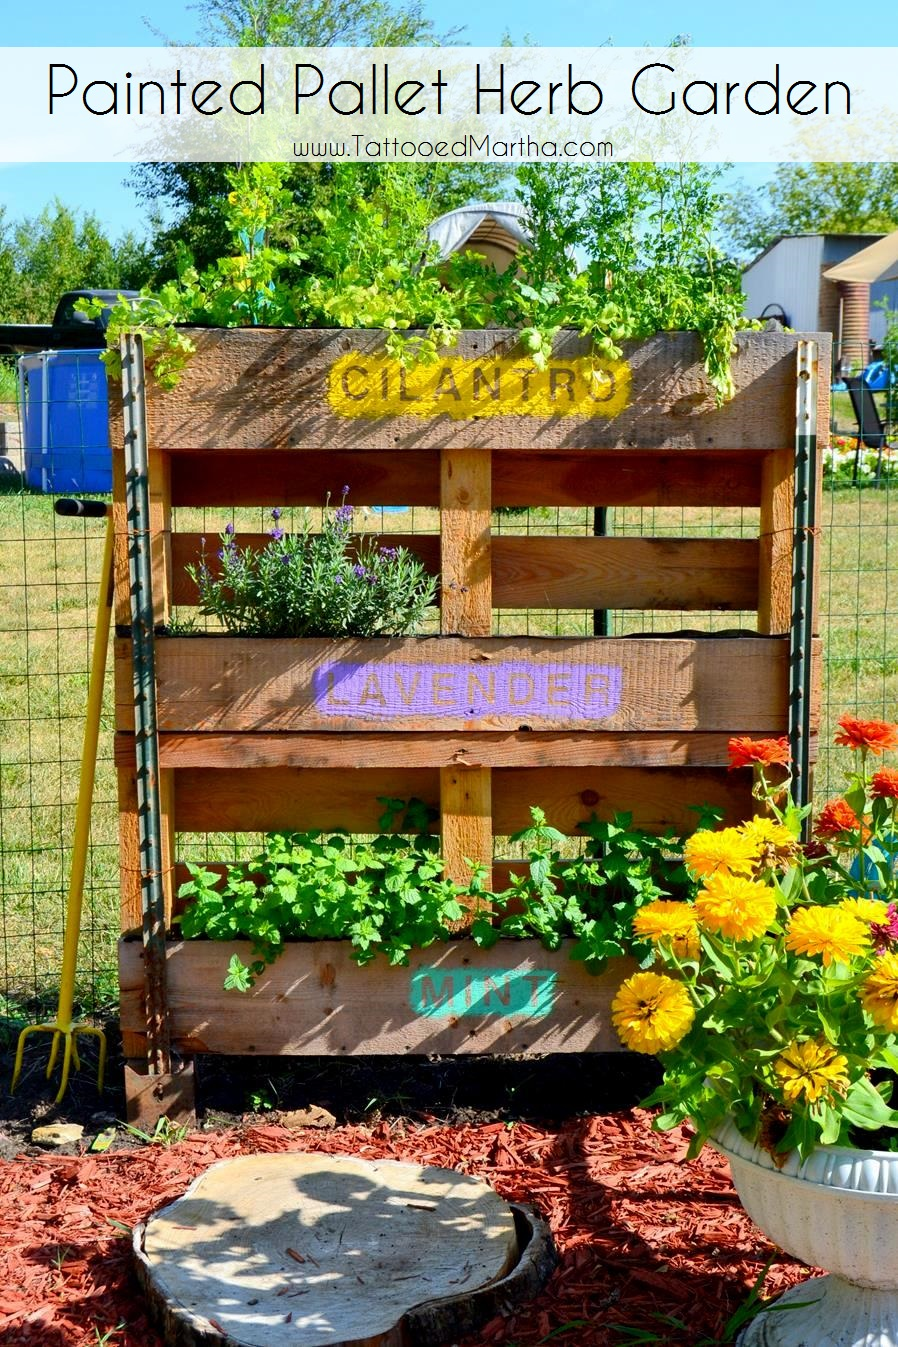 Painted Pallet Herb Garden